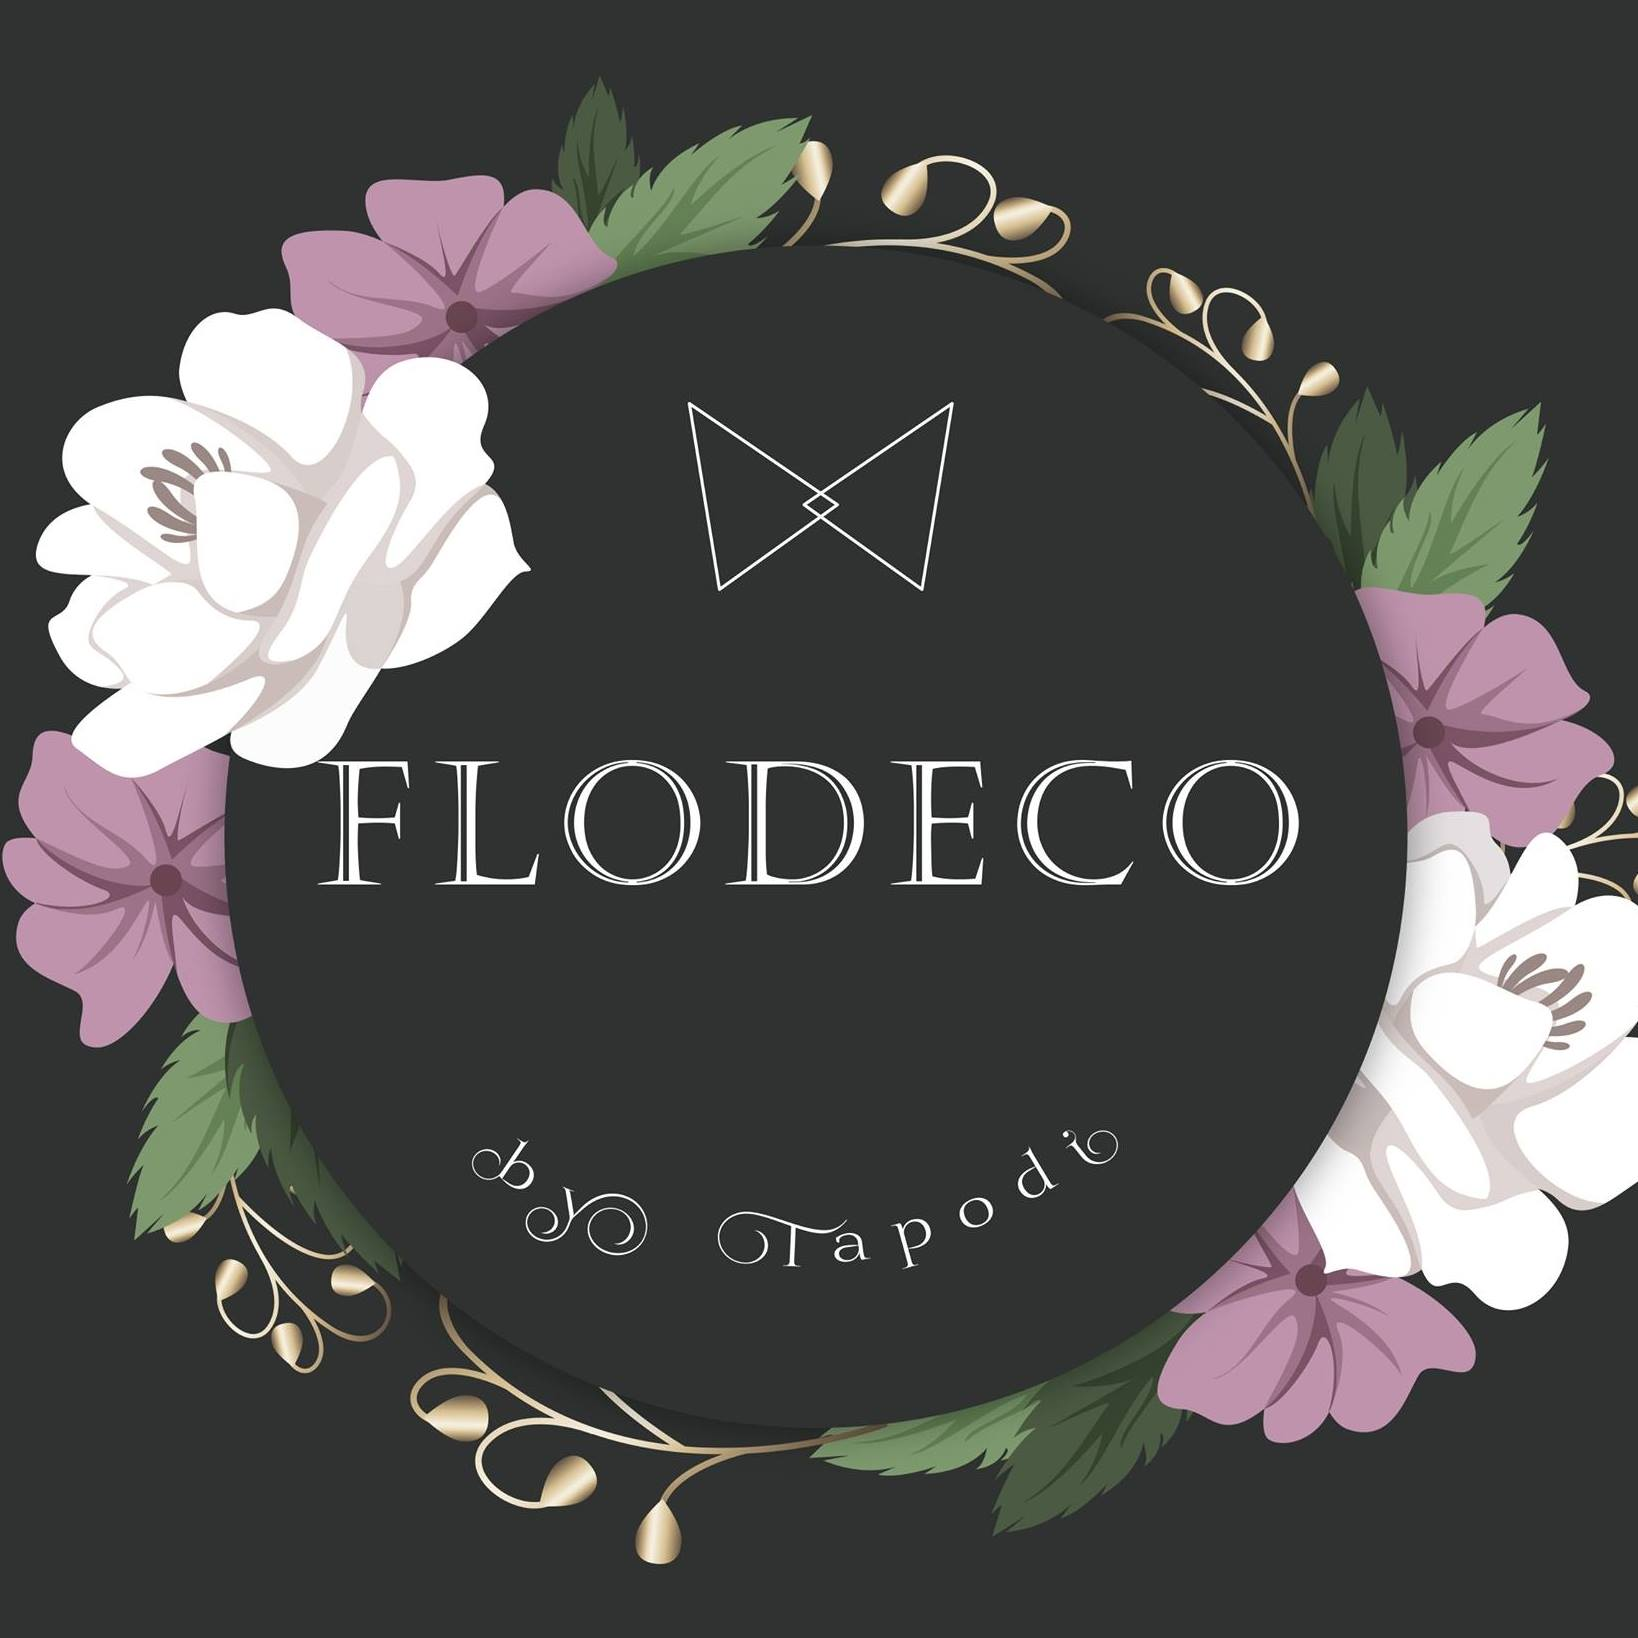 Flodeco by Tapodi